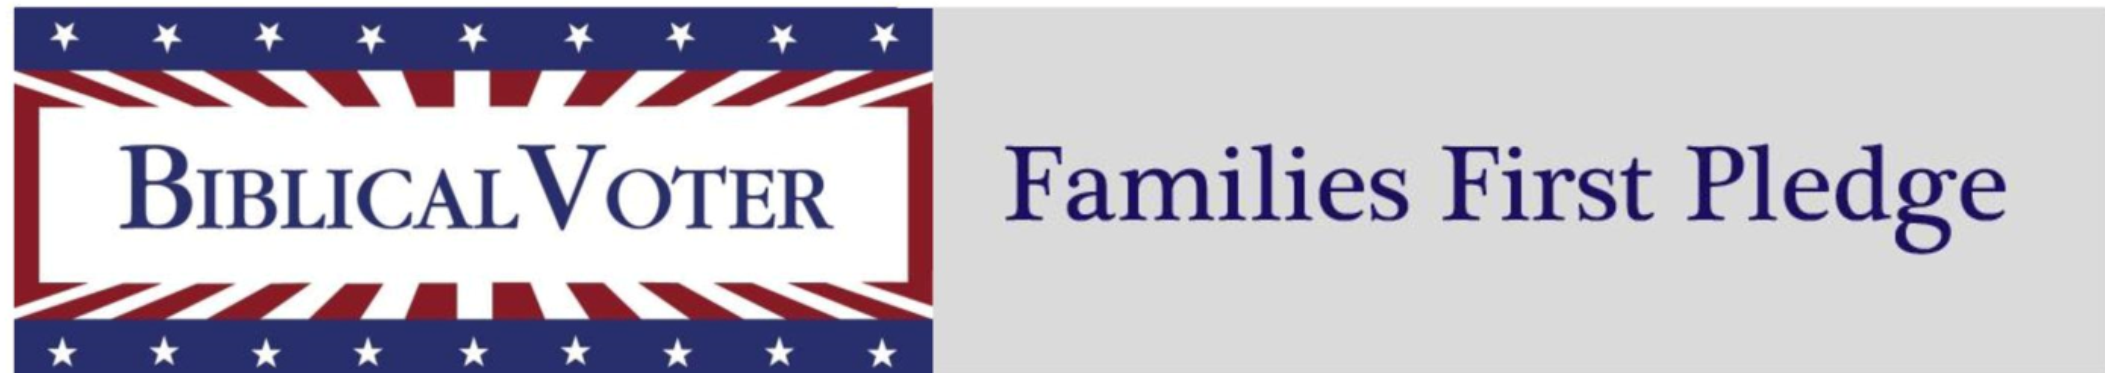 Families First Header.png